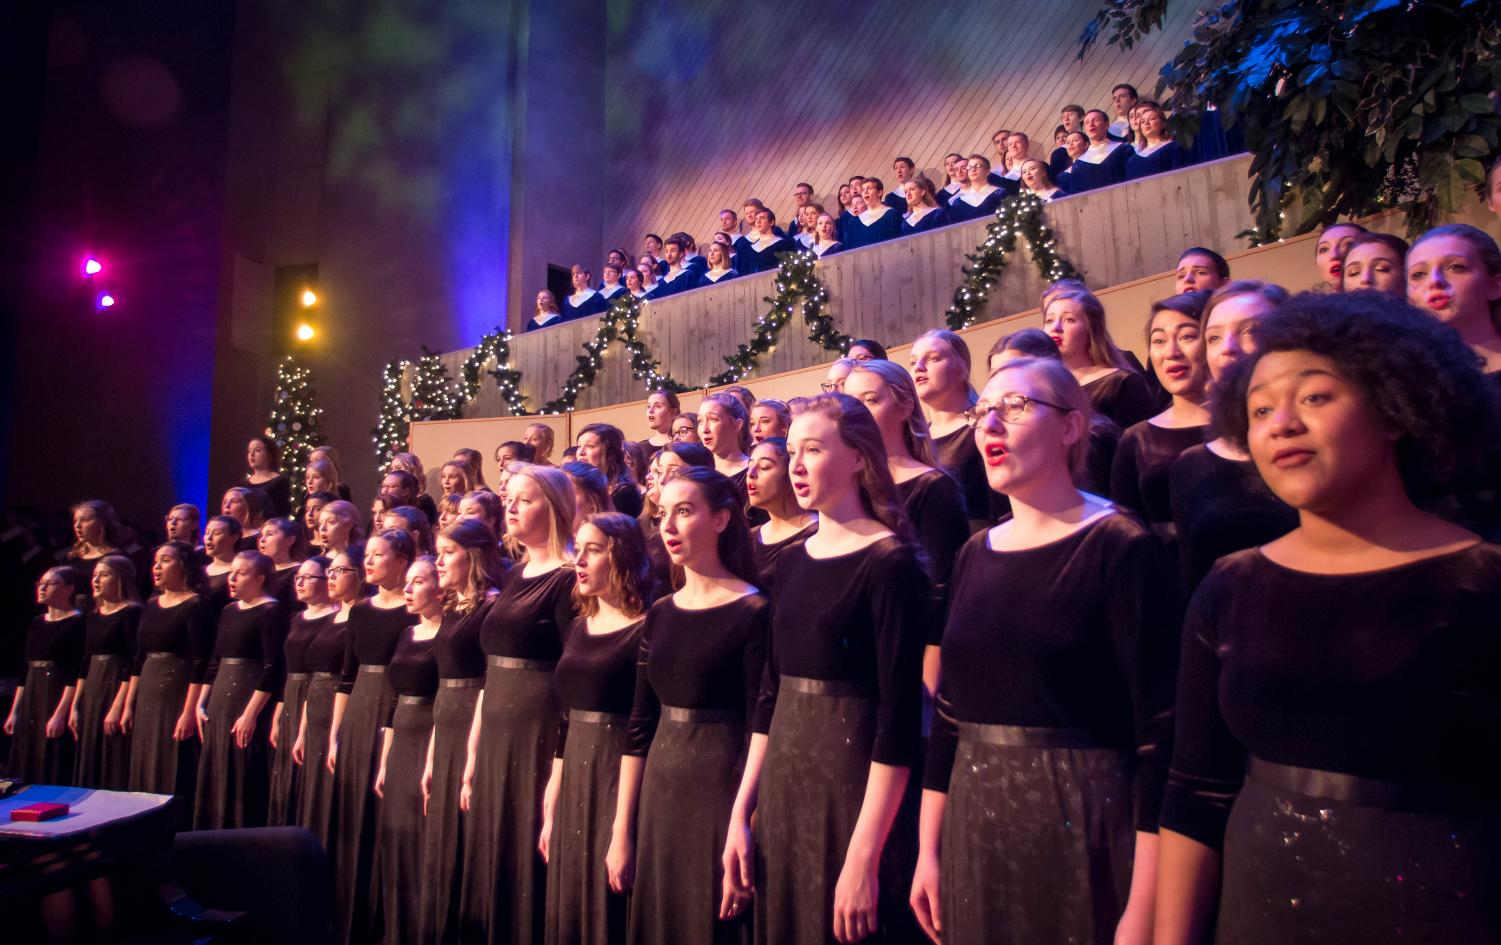 Aurora members perform in Christmas at Luther 2017 in their previous uniform of black dresses.